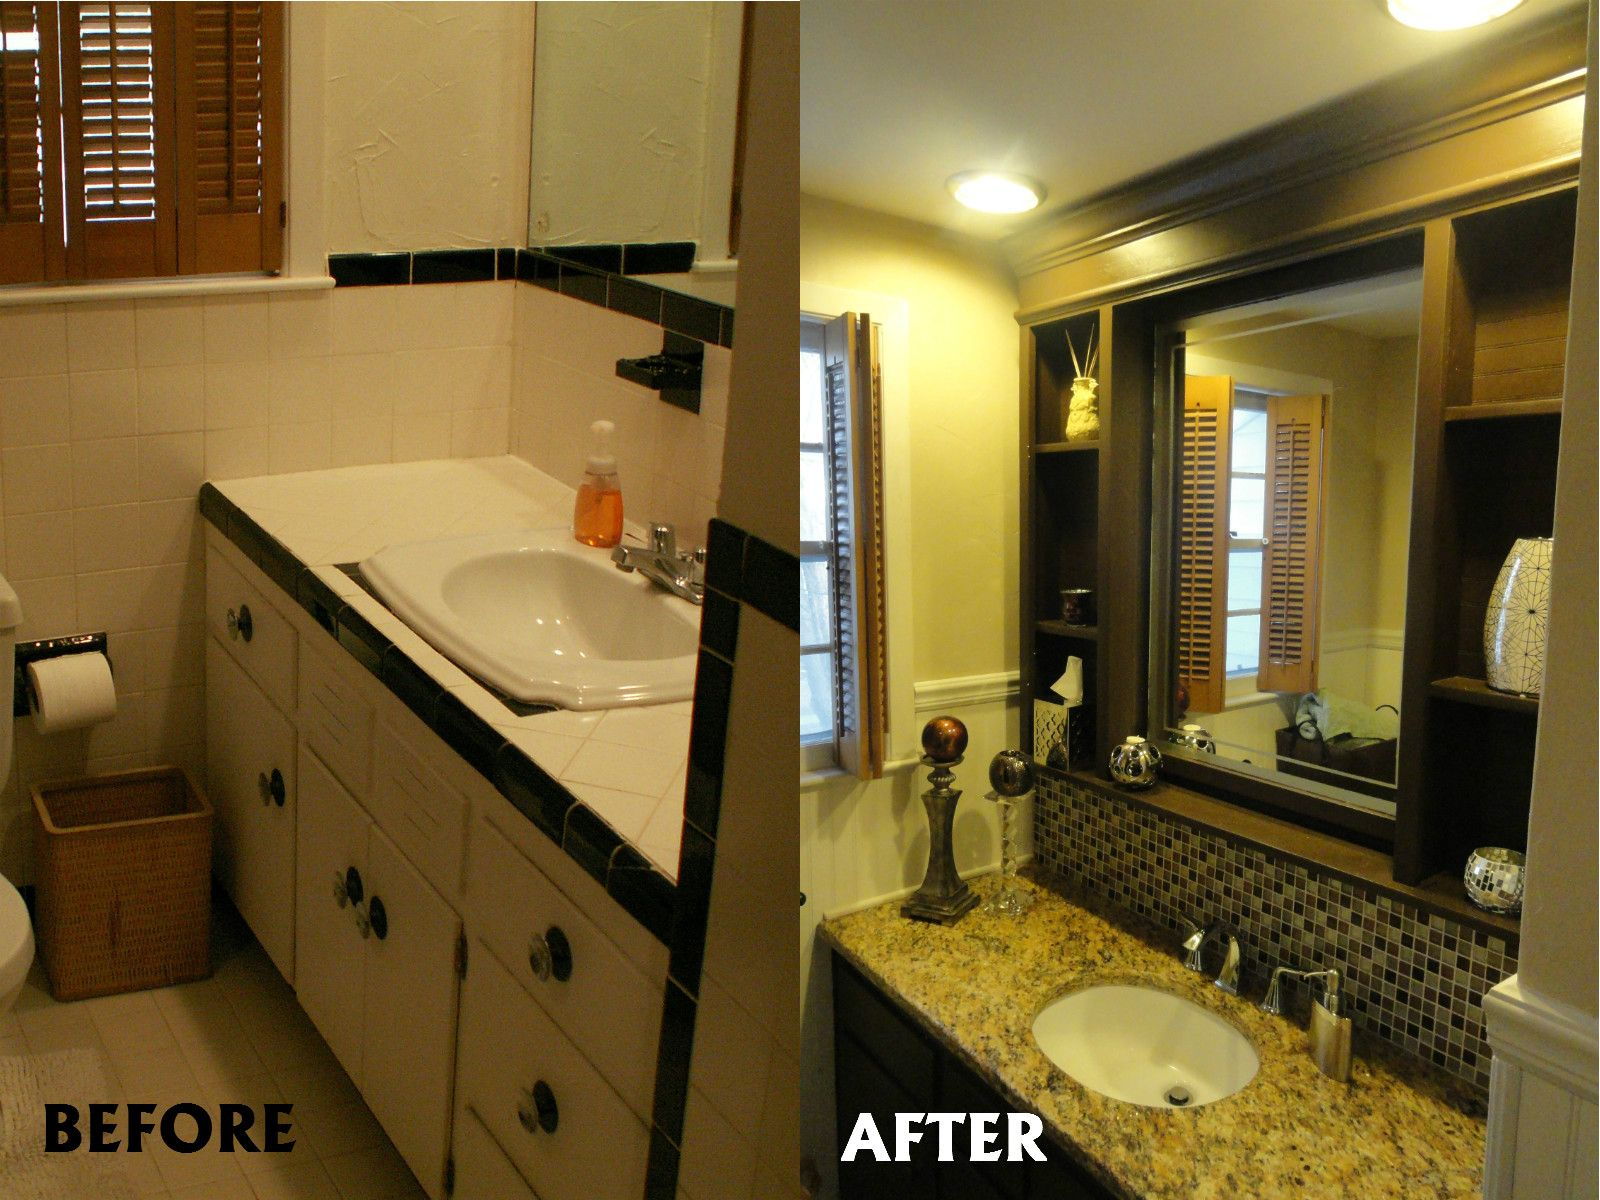 Bathroom Vanity Cabinet Before and After Installed Custom Built in